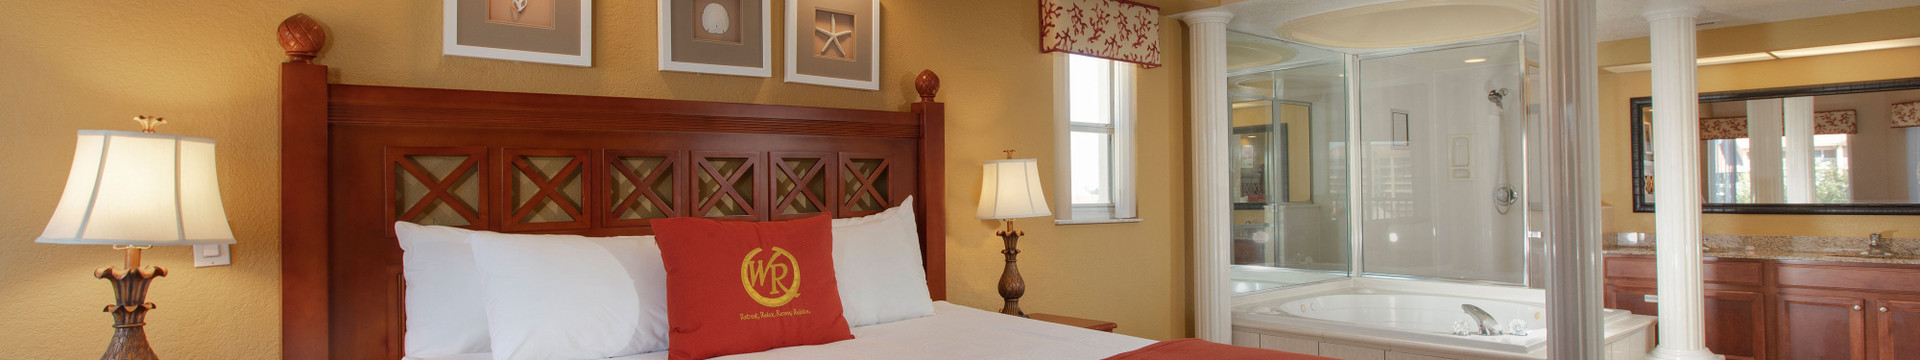 Kissimmee Hotel Accommodations Near Disney | Interior of Villa